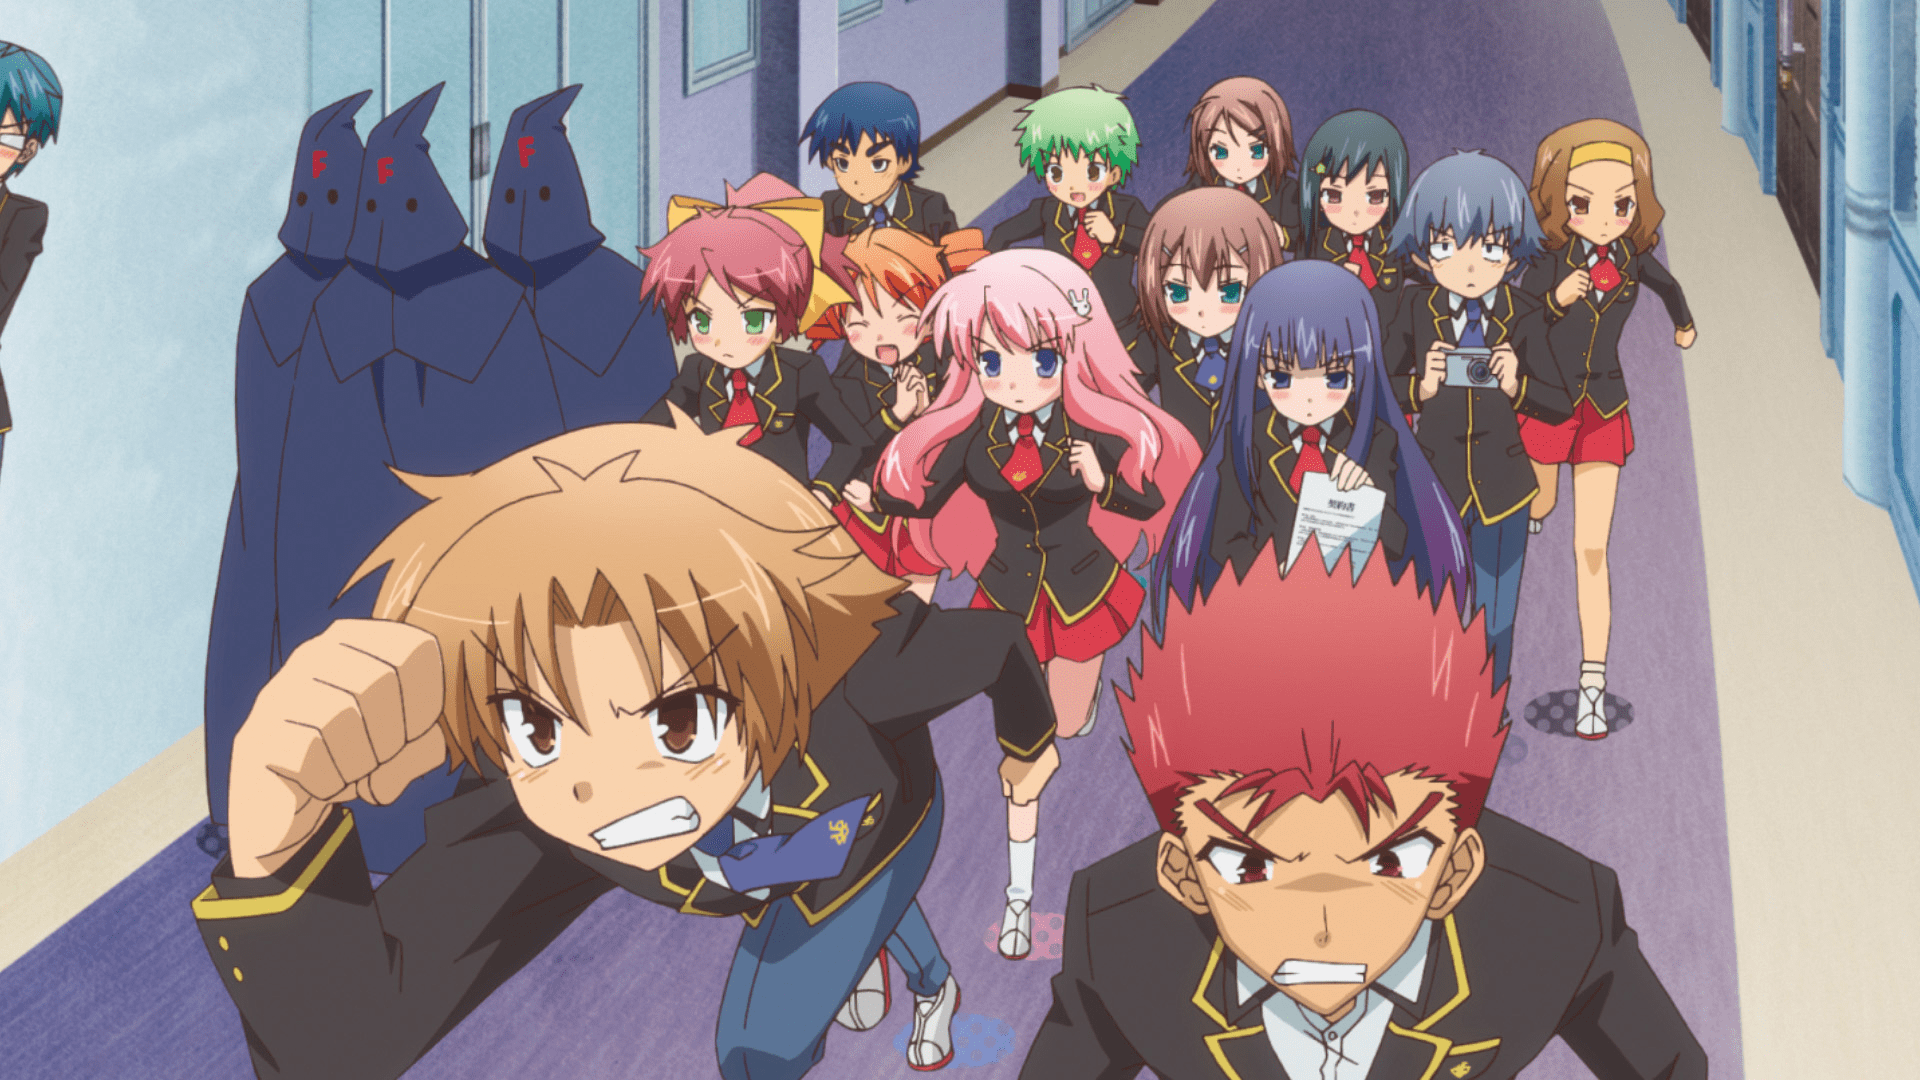 Baka to Test to Shukanjuu S1 & S2: After Thoughts